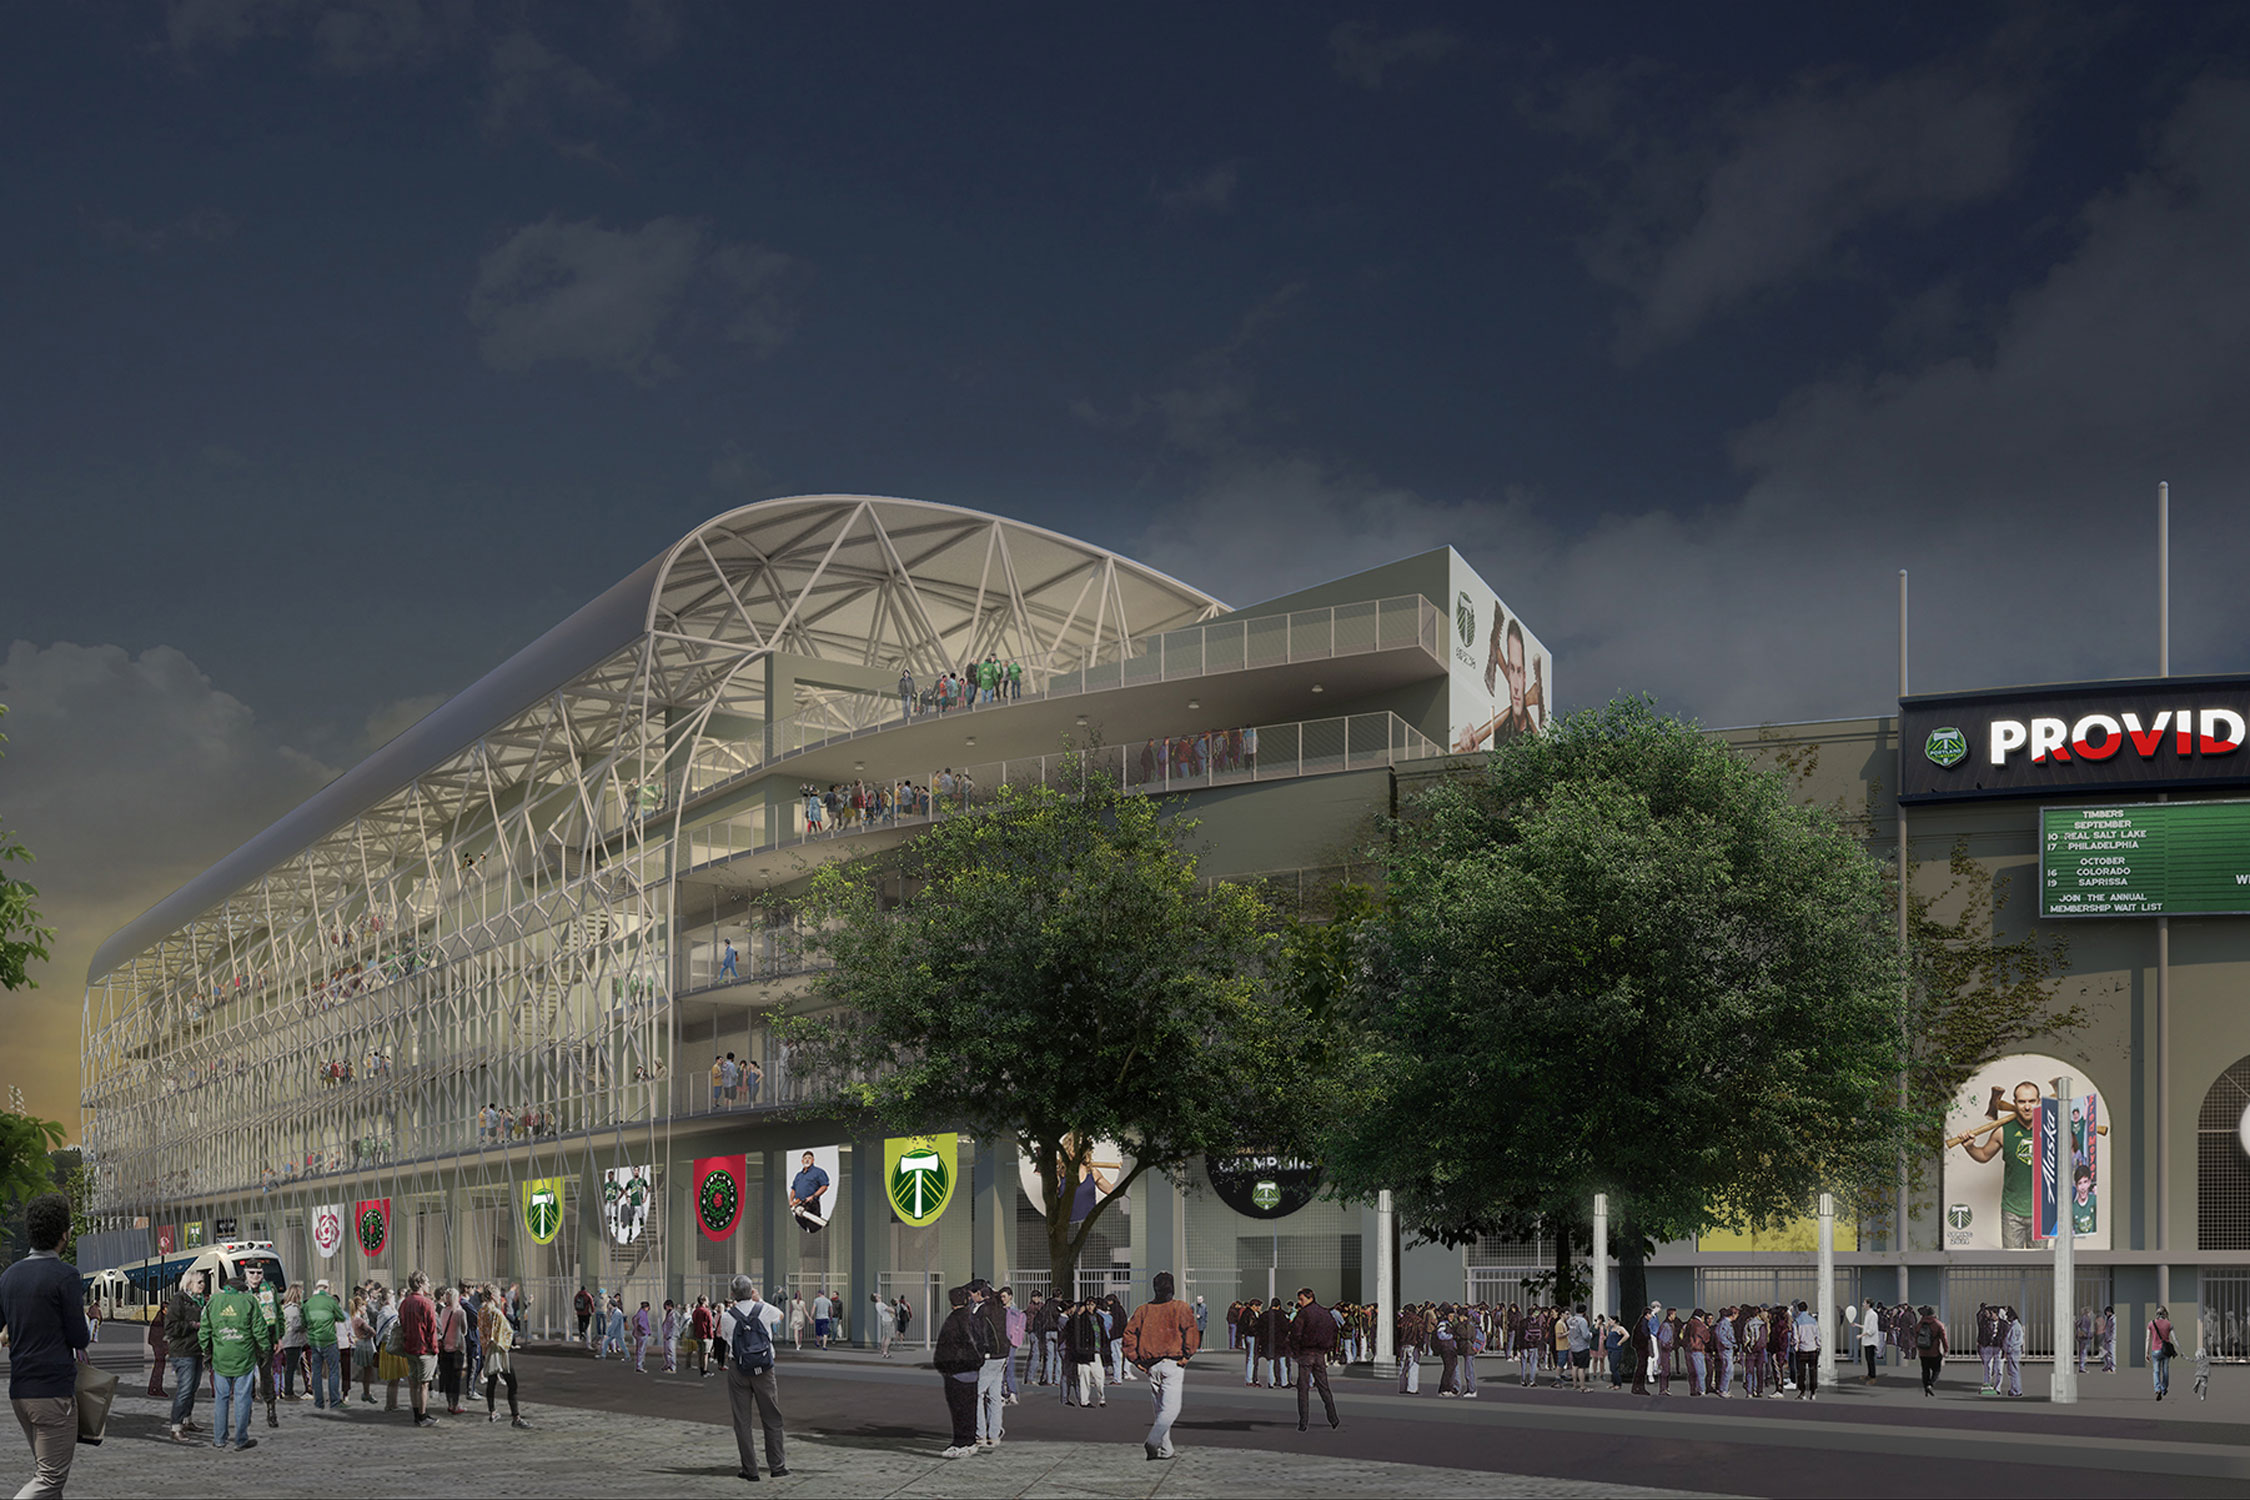 Providence Park Plans 4000-Seat Expansion